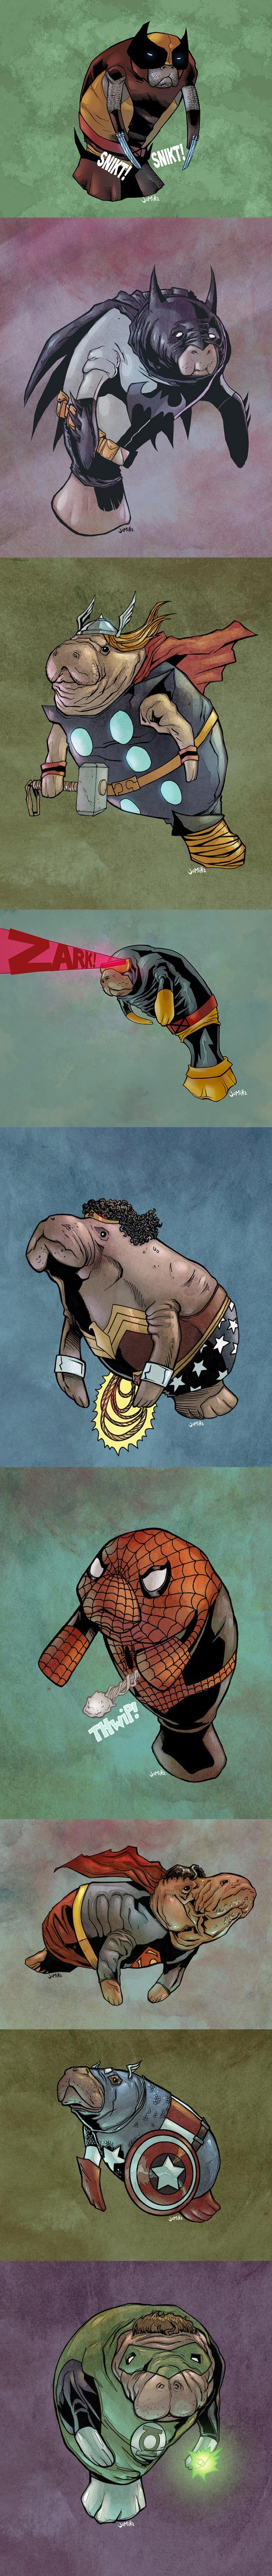 DC And Marvel Superheroes As Manatees -   Misc